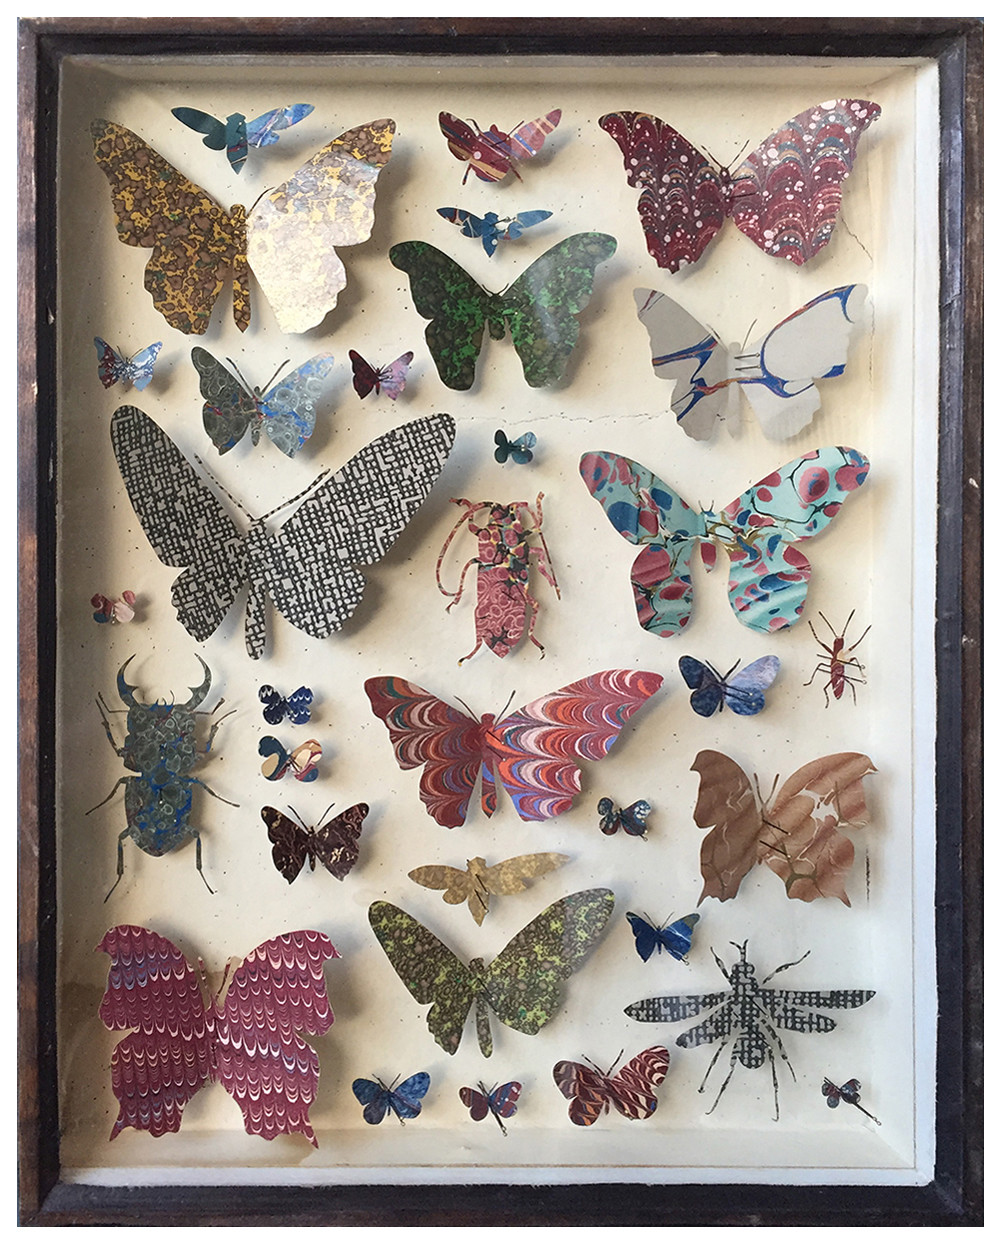 <span class=&#34;link fancybox-details-link&#34;><a href=&#34;/artists/142-helen-ward/works/6234-helen-ward-entomology-case-8-2019/&#34;>View Detail Page</a></span><div class=&#34;artist&#34;><strong>Helen Ward</strong></div> <div class=&#34;title&#34;><em>Entomology Case 8</em>, 2019</div> <div class=&#34;medium&#34;>Victorian entomology drawer, hand-marbled papers, enamel pins</div> <div class=&#34;dimensions&#34;>39 x 29 cm</div><div class=&#34;price&#34;>£595.00</div><div class=&#34;copyright_line&#34;>Own Art: £ 59.50 x 10 Monthly 0% APR Representative Payments</div>